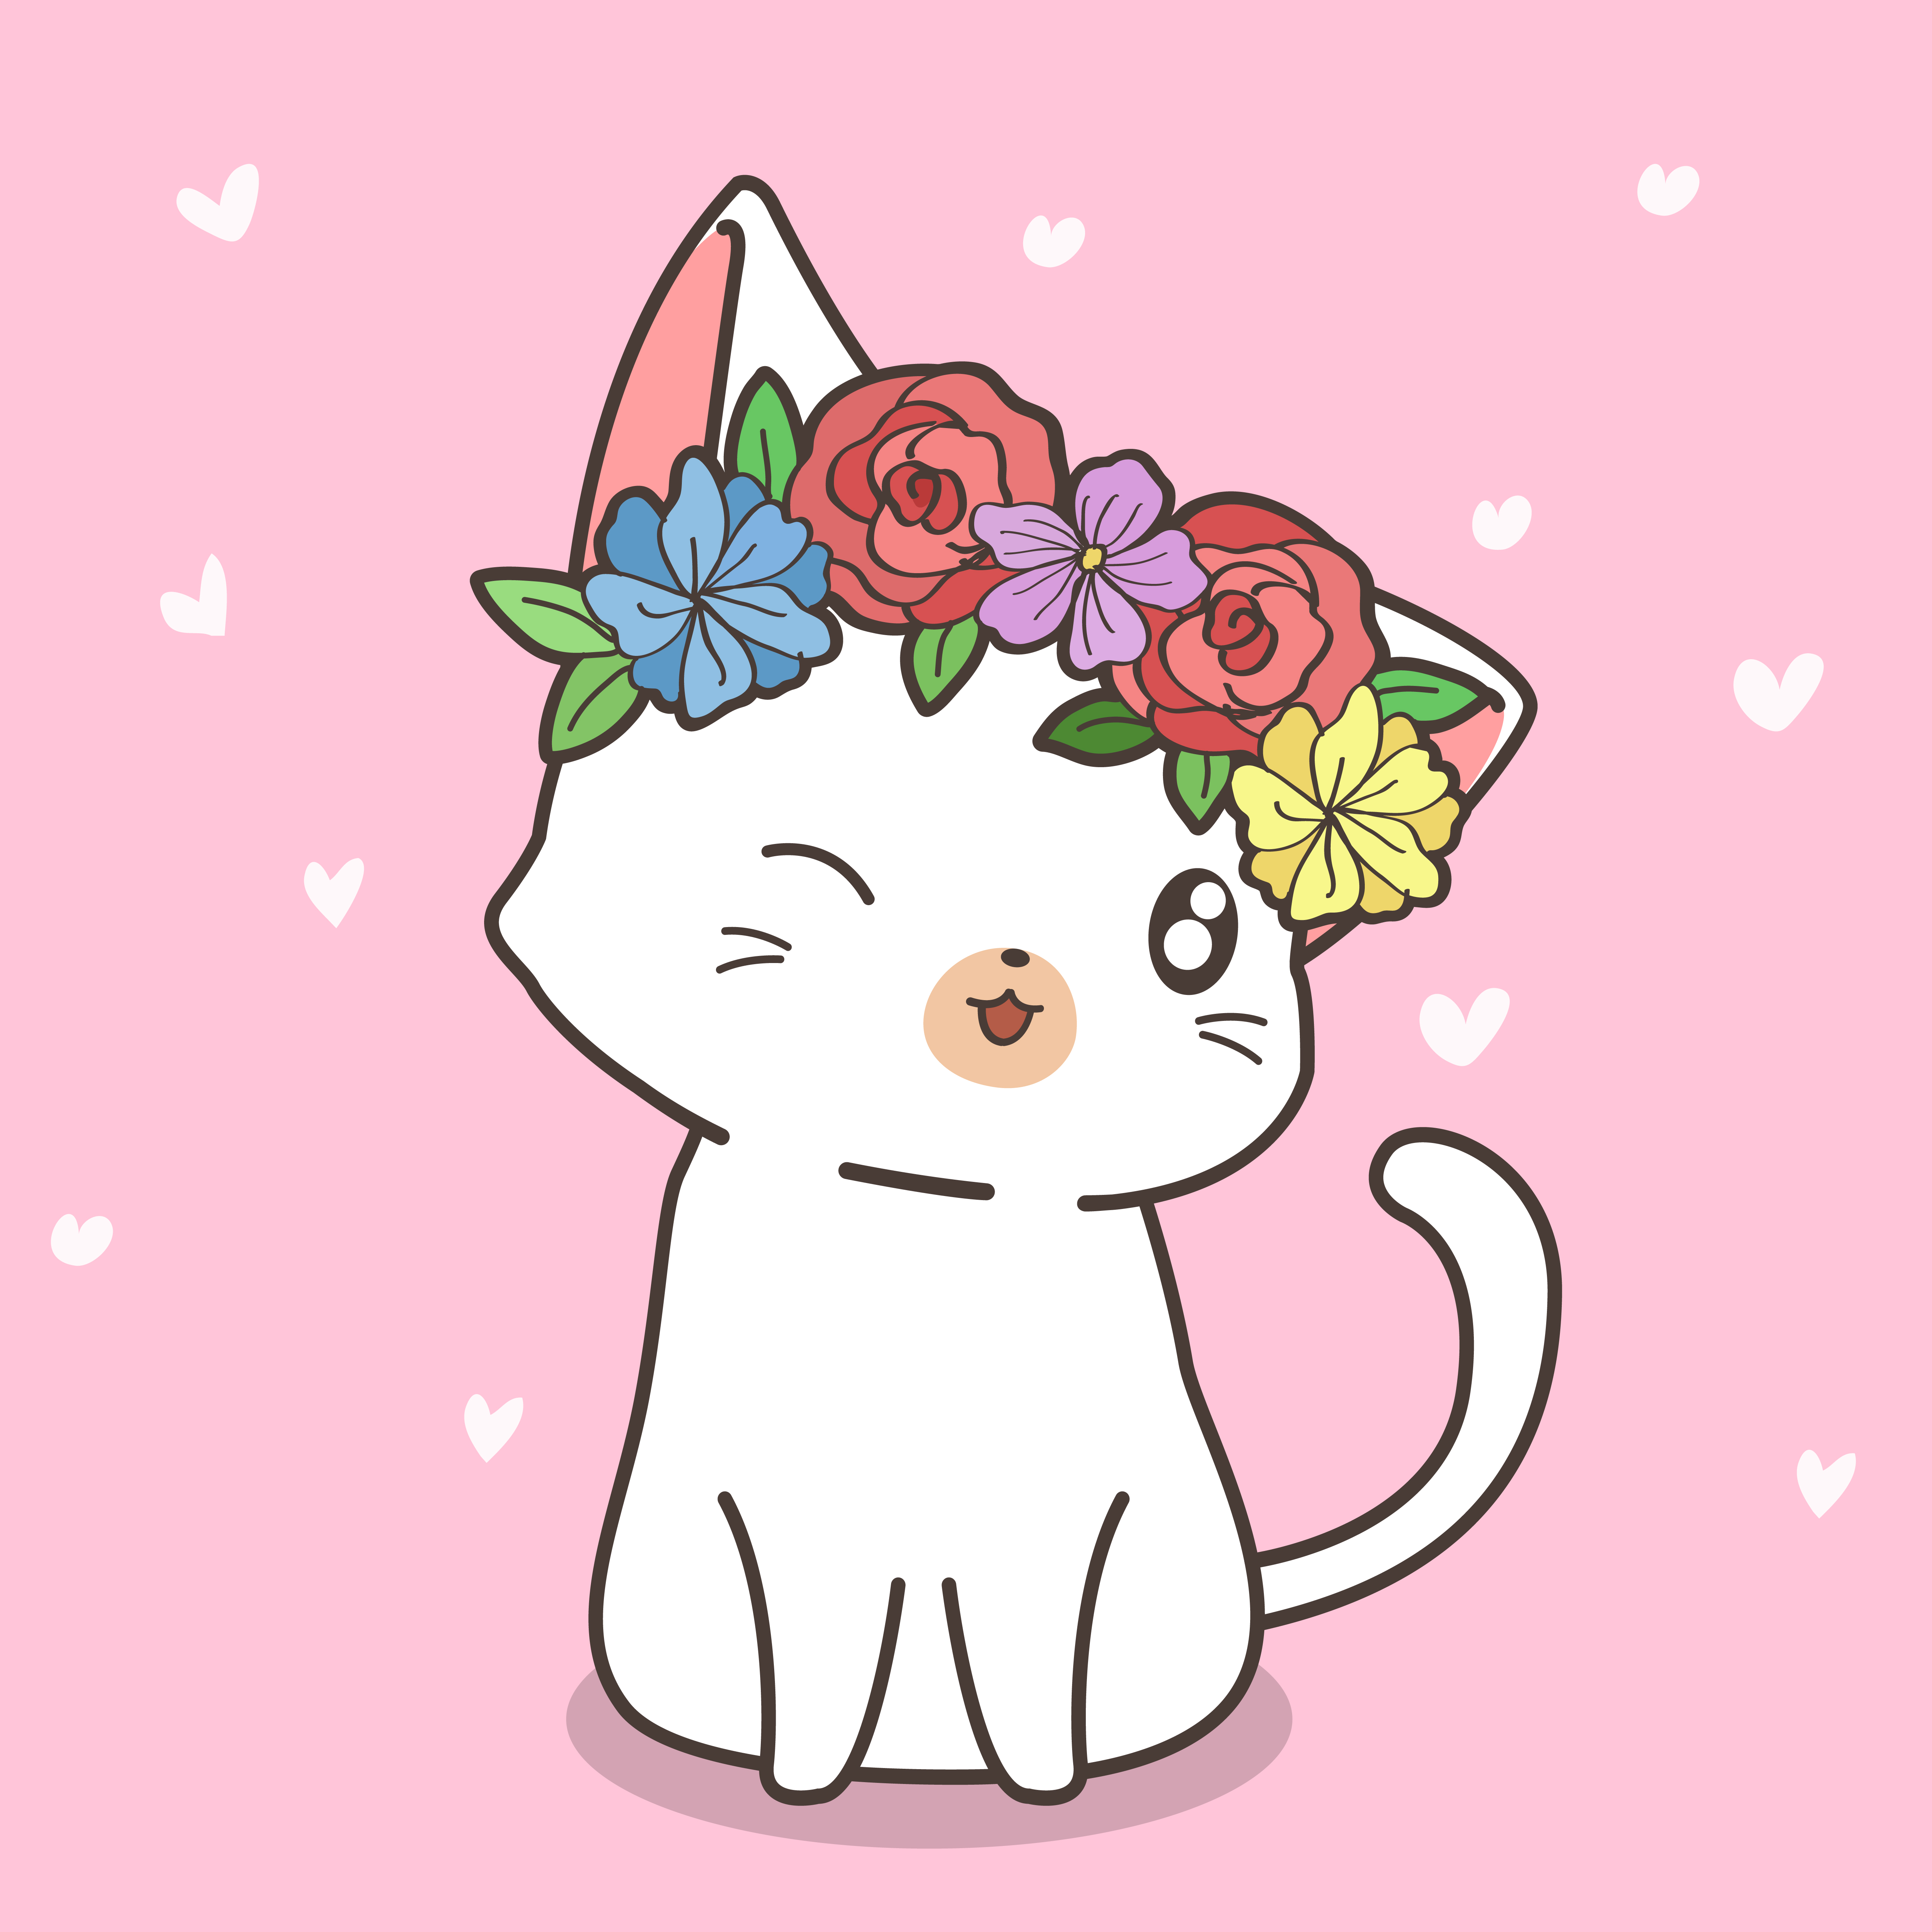 Hand Drawn White Cat With Flower Crown Download Free Vectors Clipart Graphics Vector Art Free cartoon flower vector download in ai, svg, eps and cdr. vecteezy